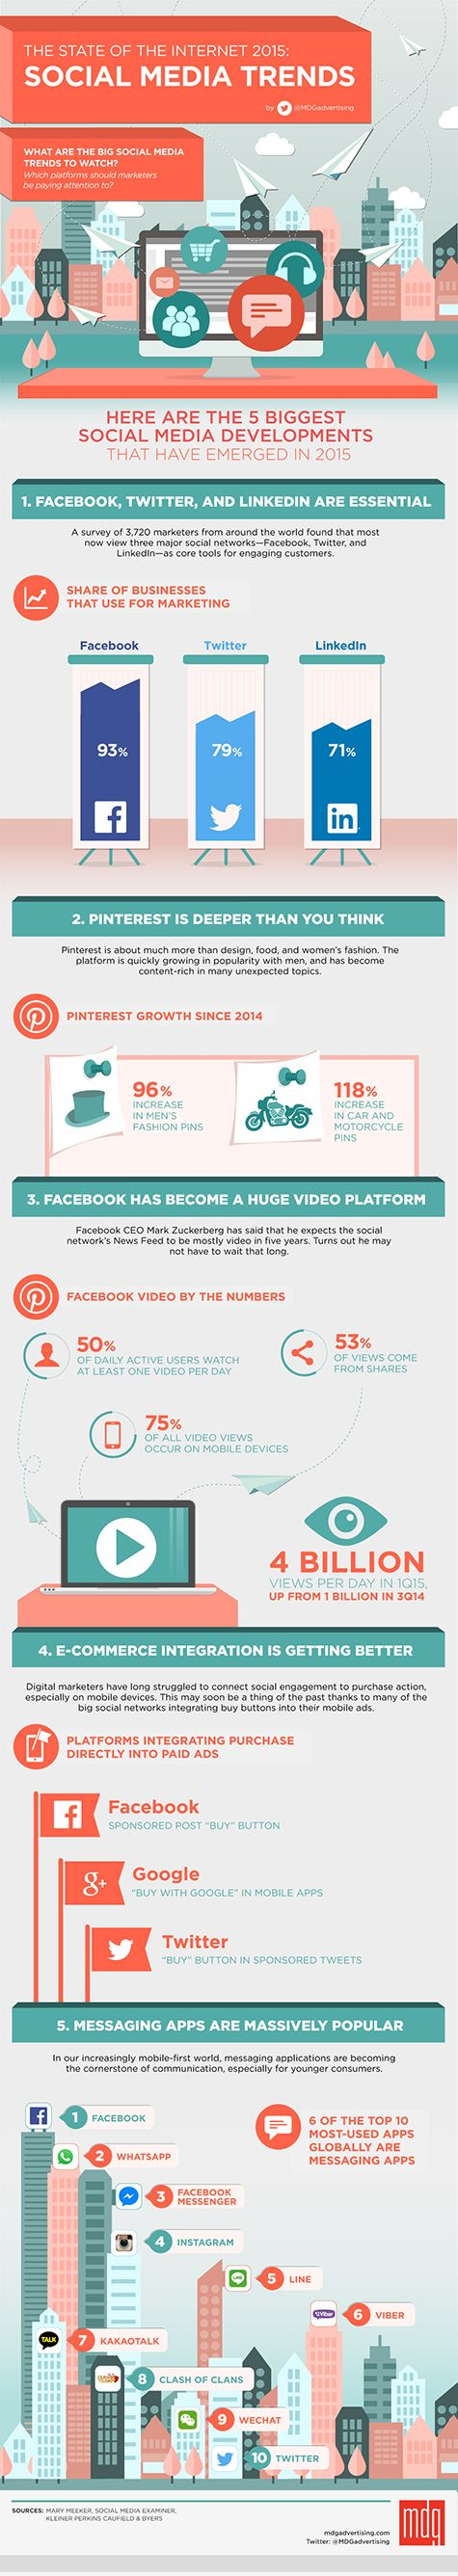 What Are the Top Social Media Trends? Video Rules Facebook, Men Joining Pinterest, and More [Infographic]